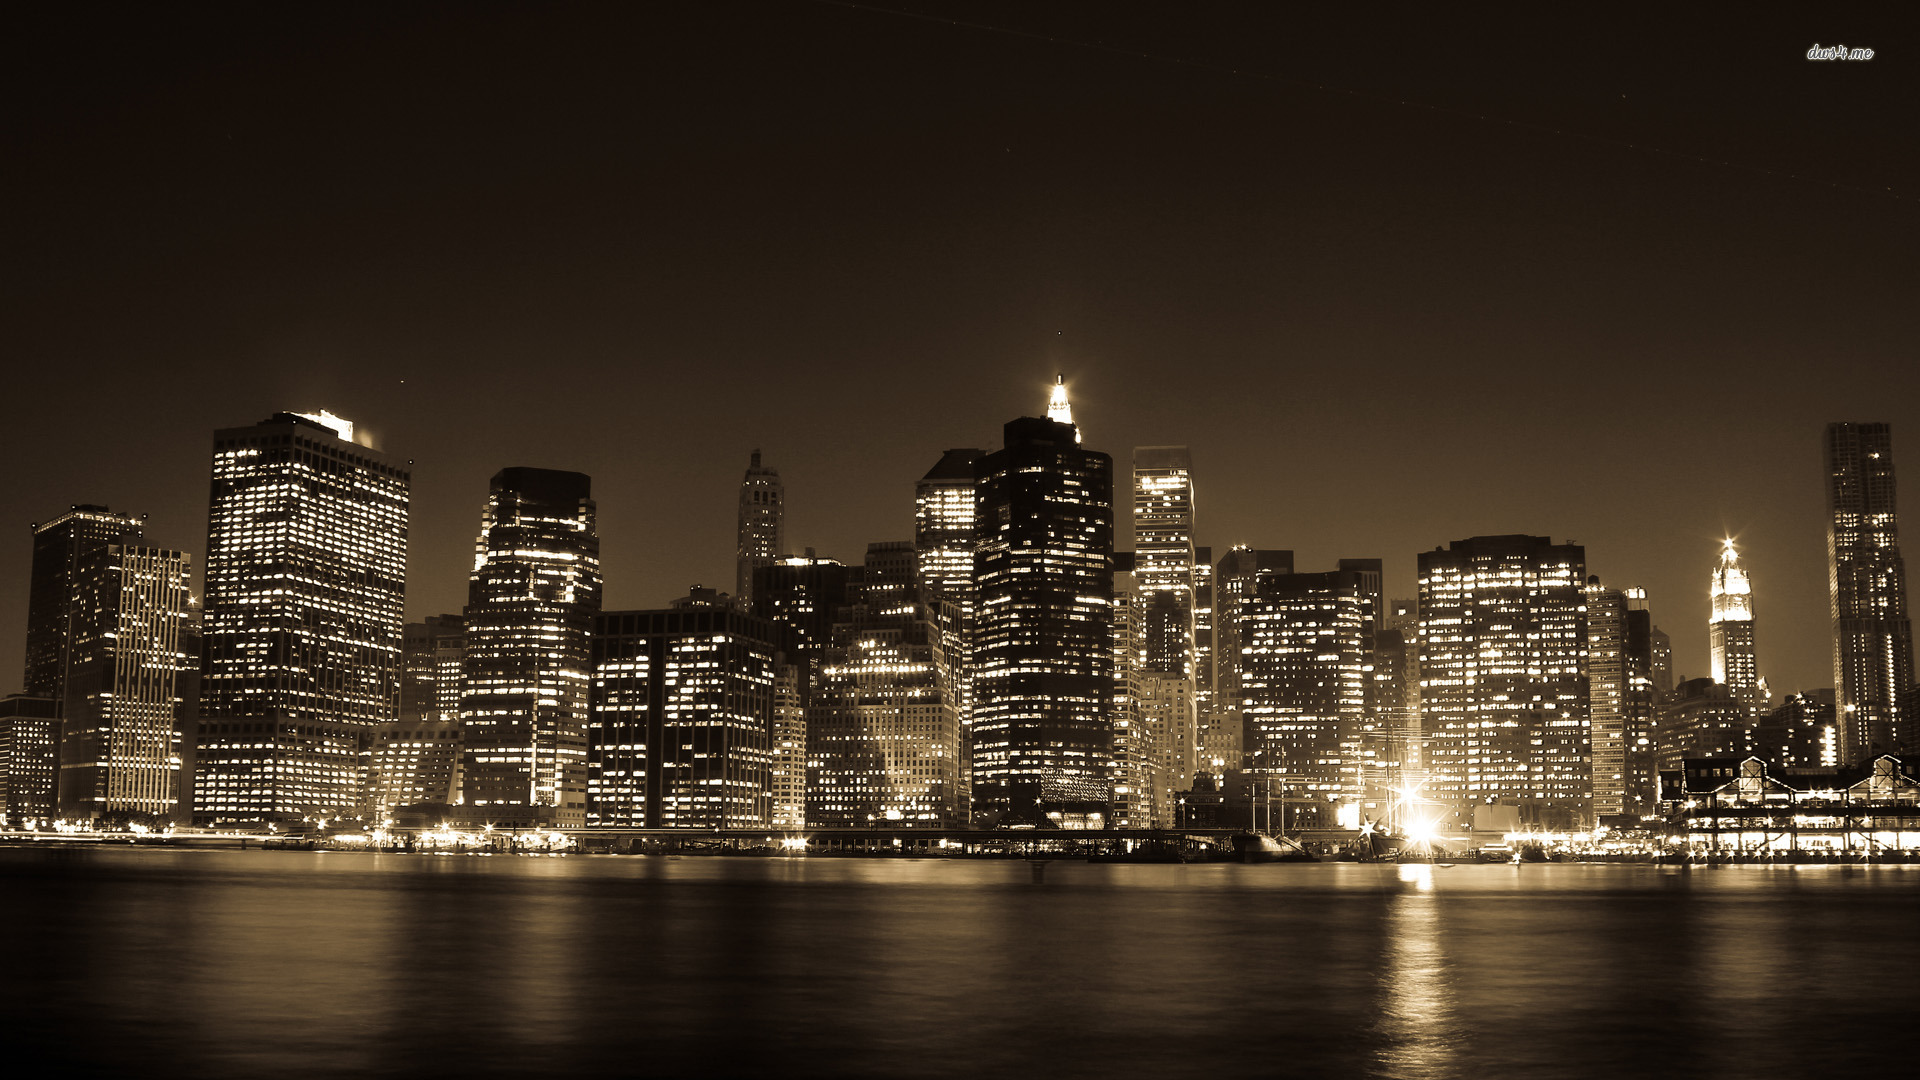 New York City Lights wallpapers HD   277223 1920x1080